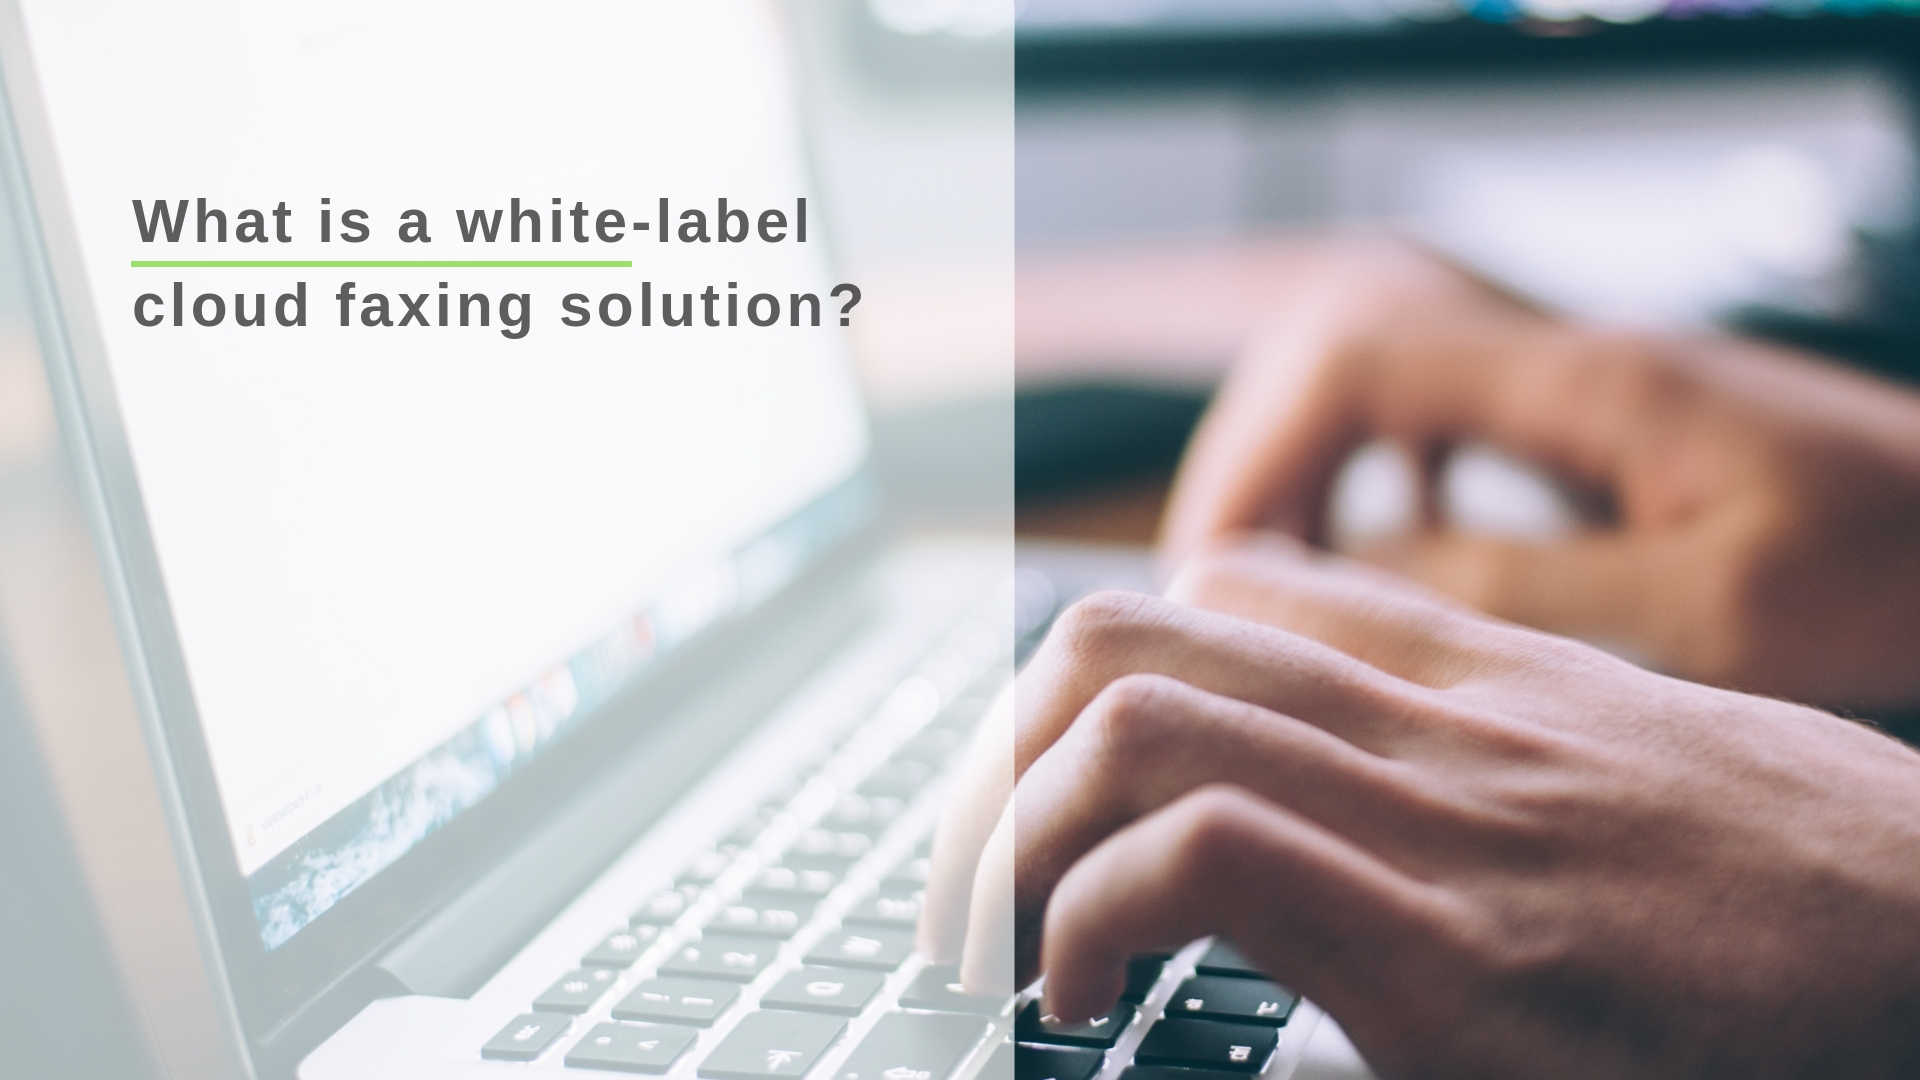 gofax-white-label-cloud-faxing-solution